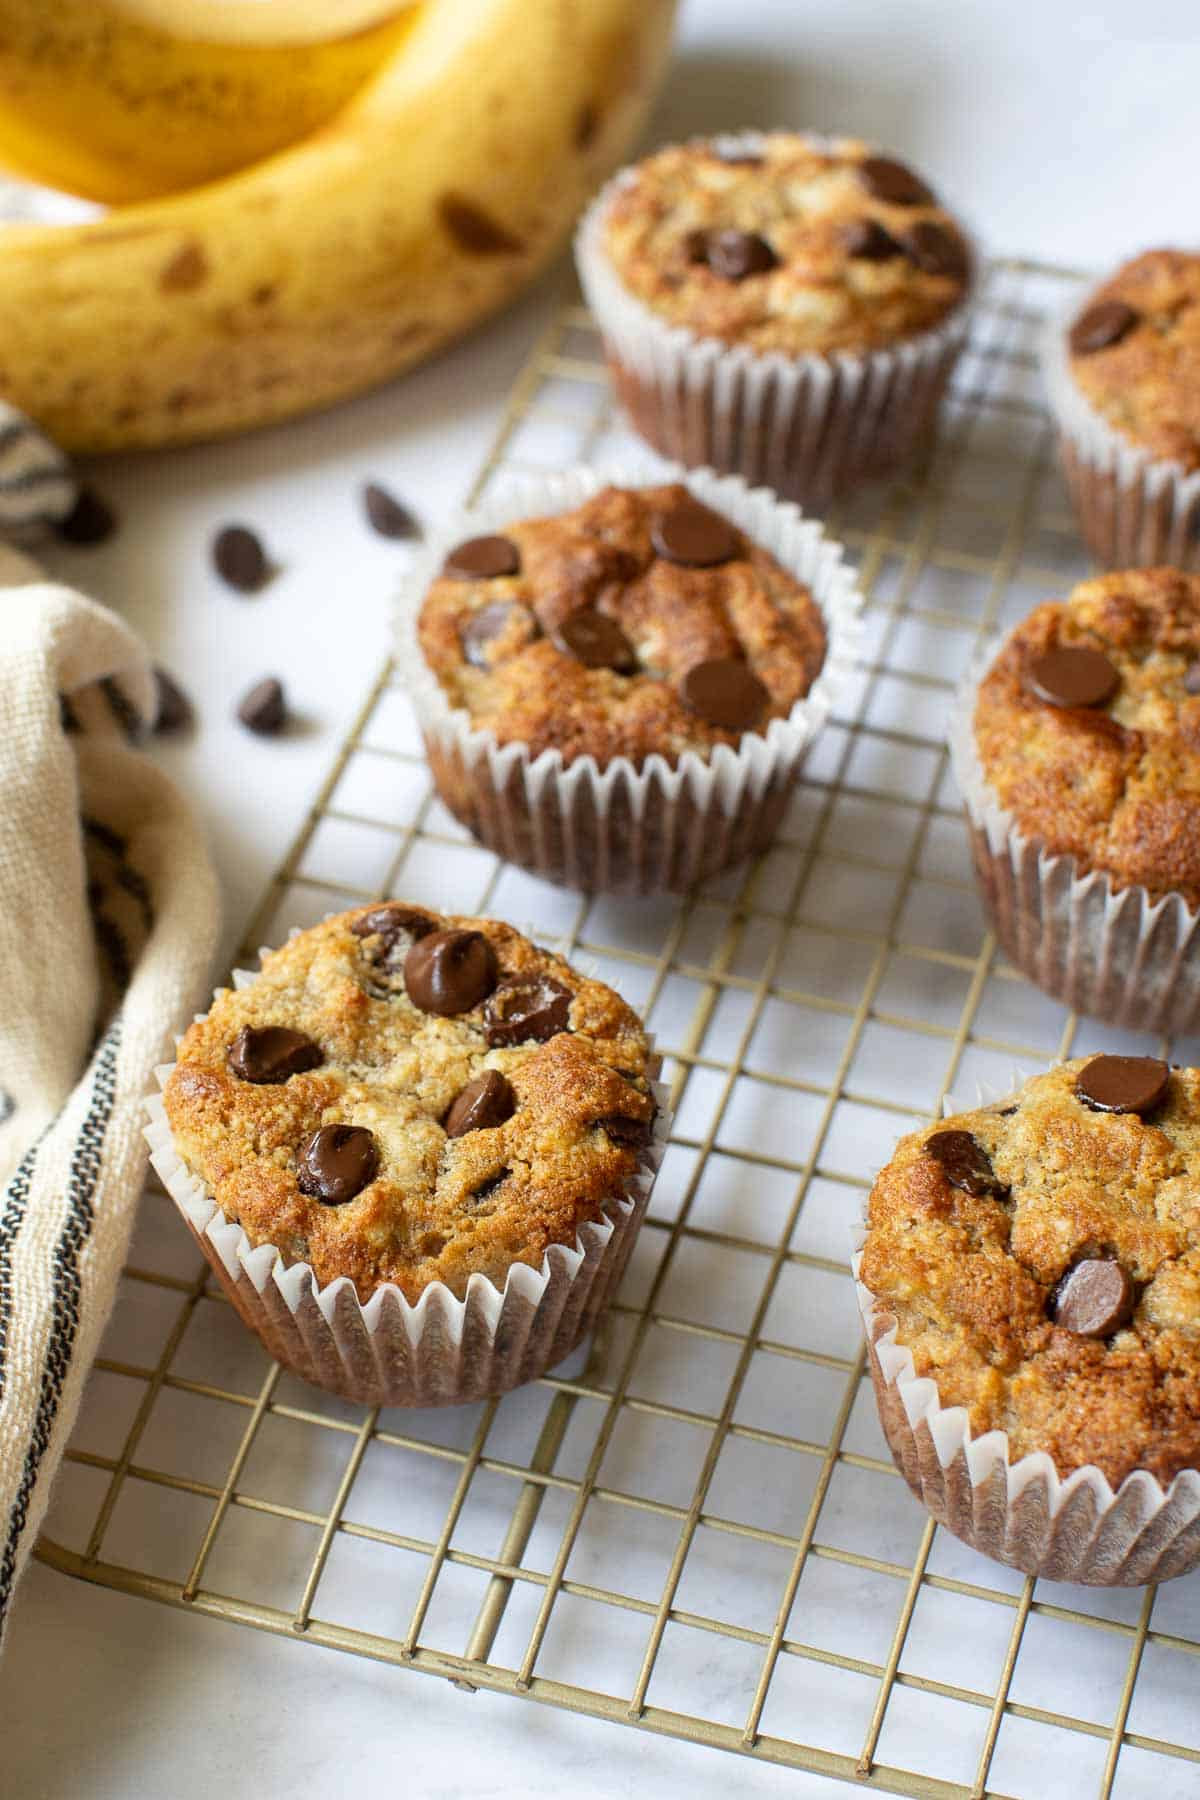 Six almond flour banana muffins with chocolate chips on wire rack.